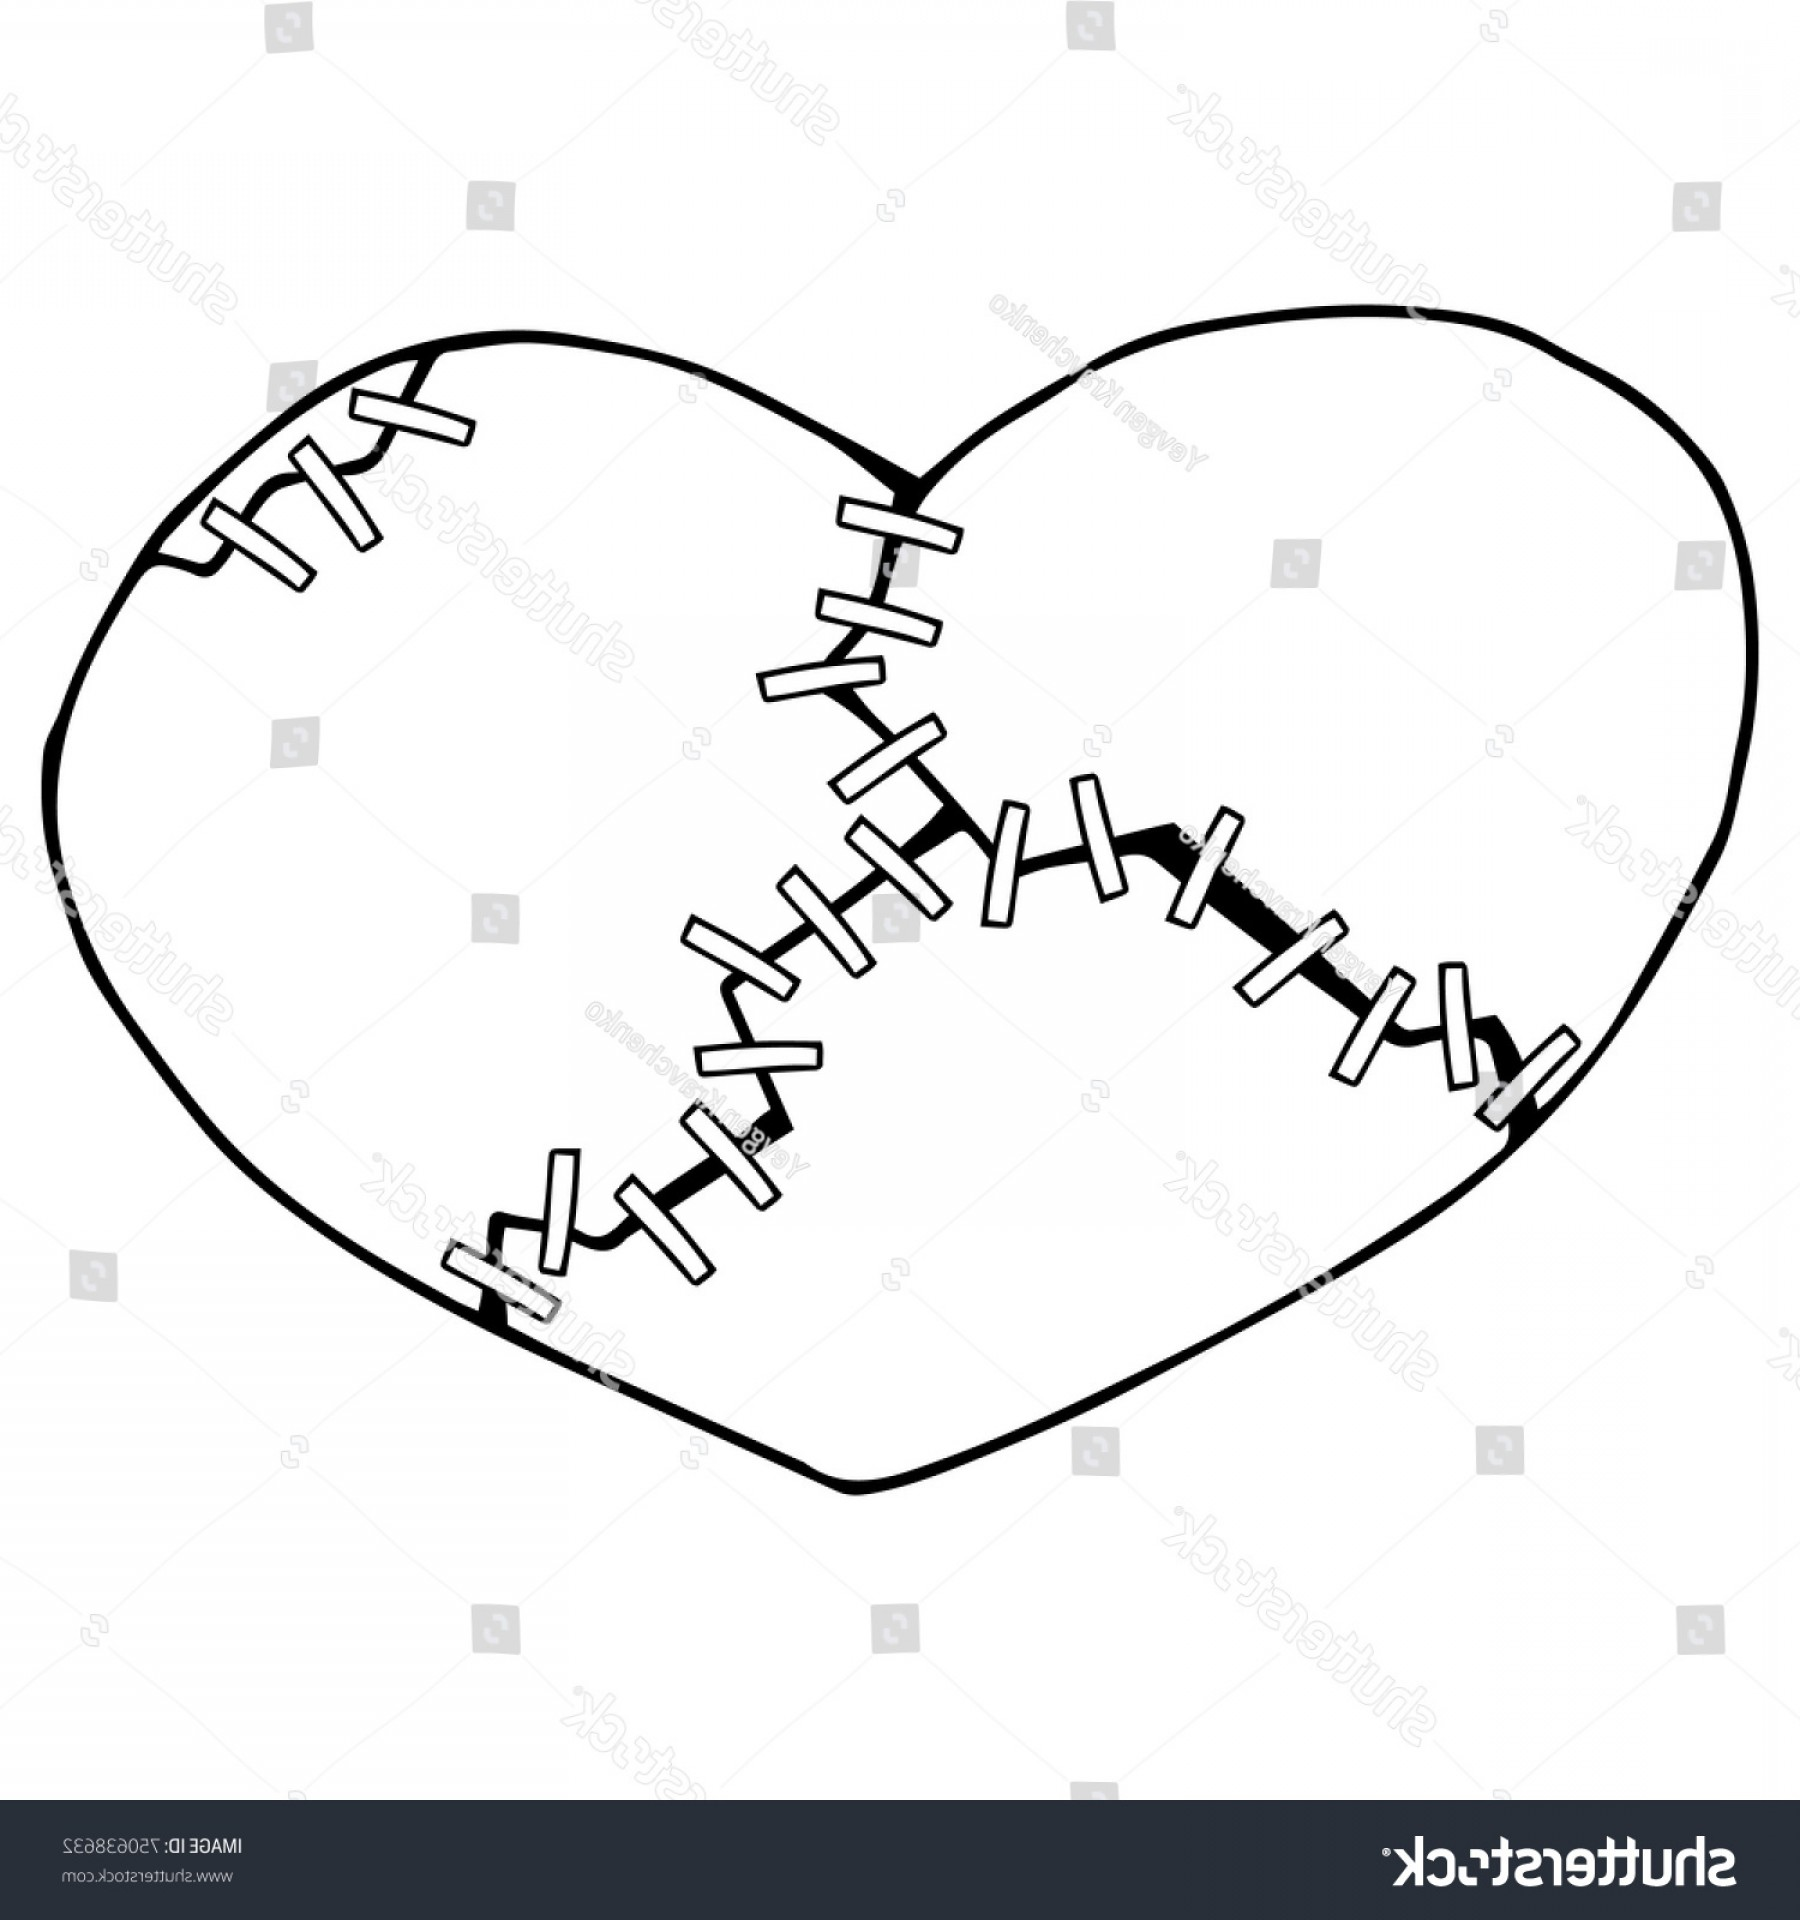 White Staples Vector Logo: Broken Heart Several Pieces Collected Help